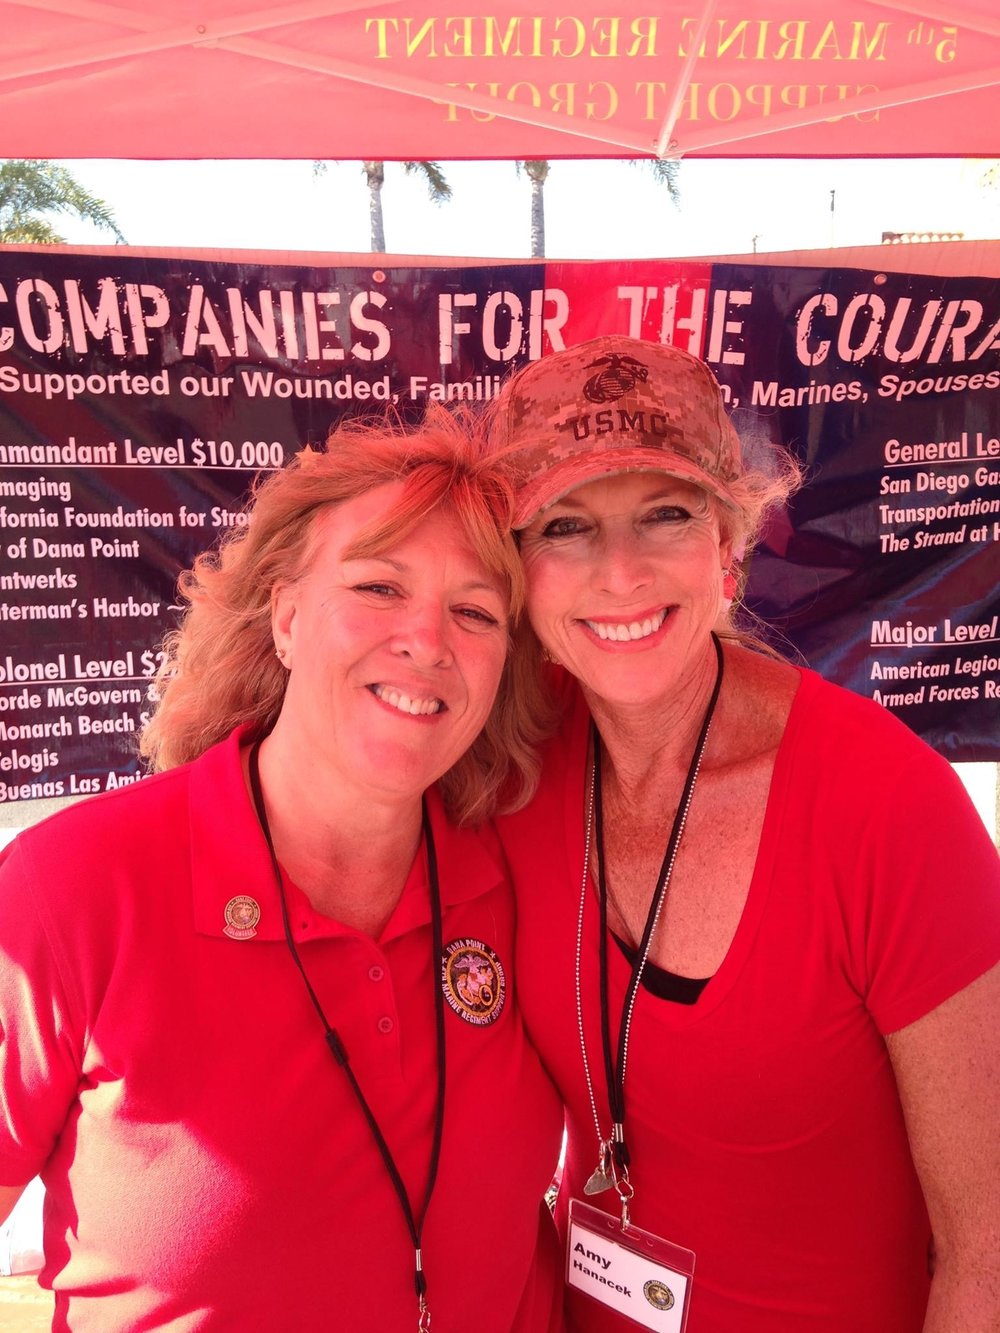 Volunteering for the Dana Point 5th Regiment Marines with volunteer mom Sheri Schneringer